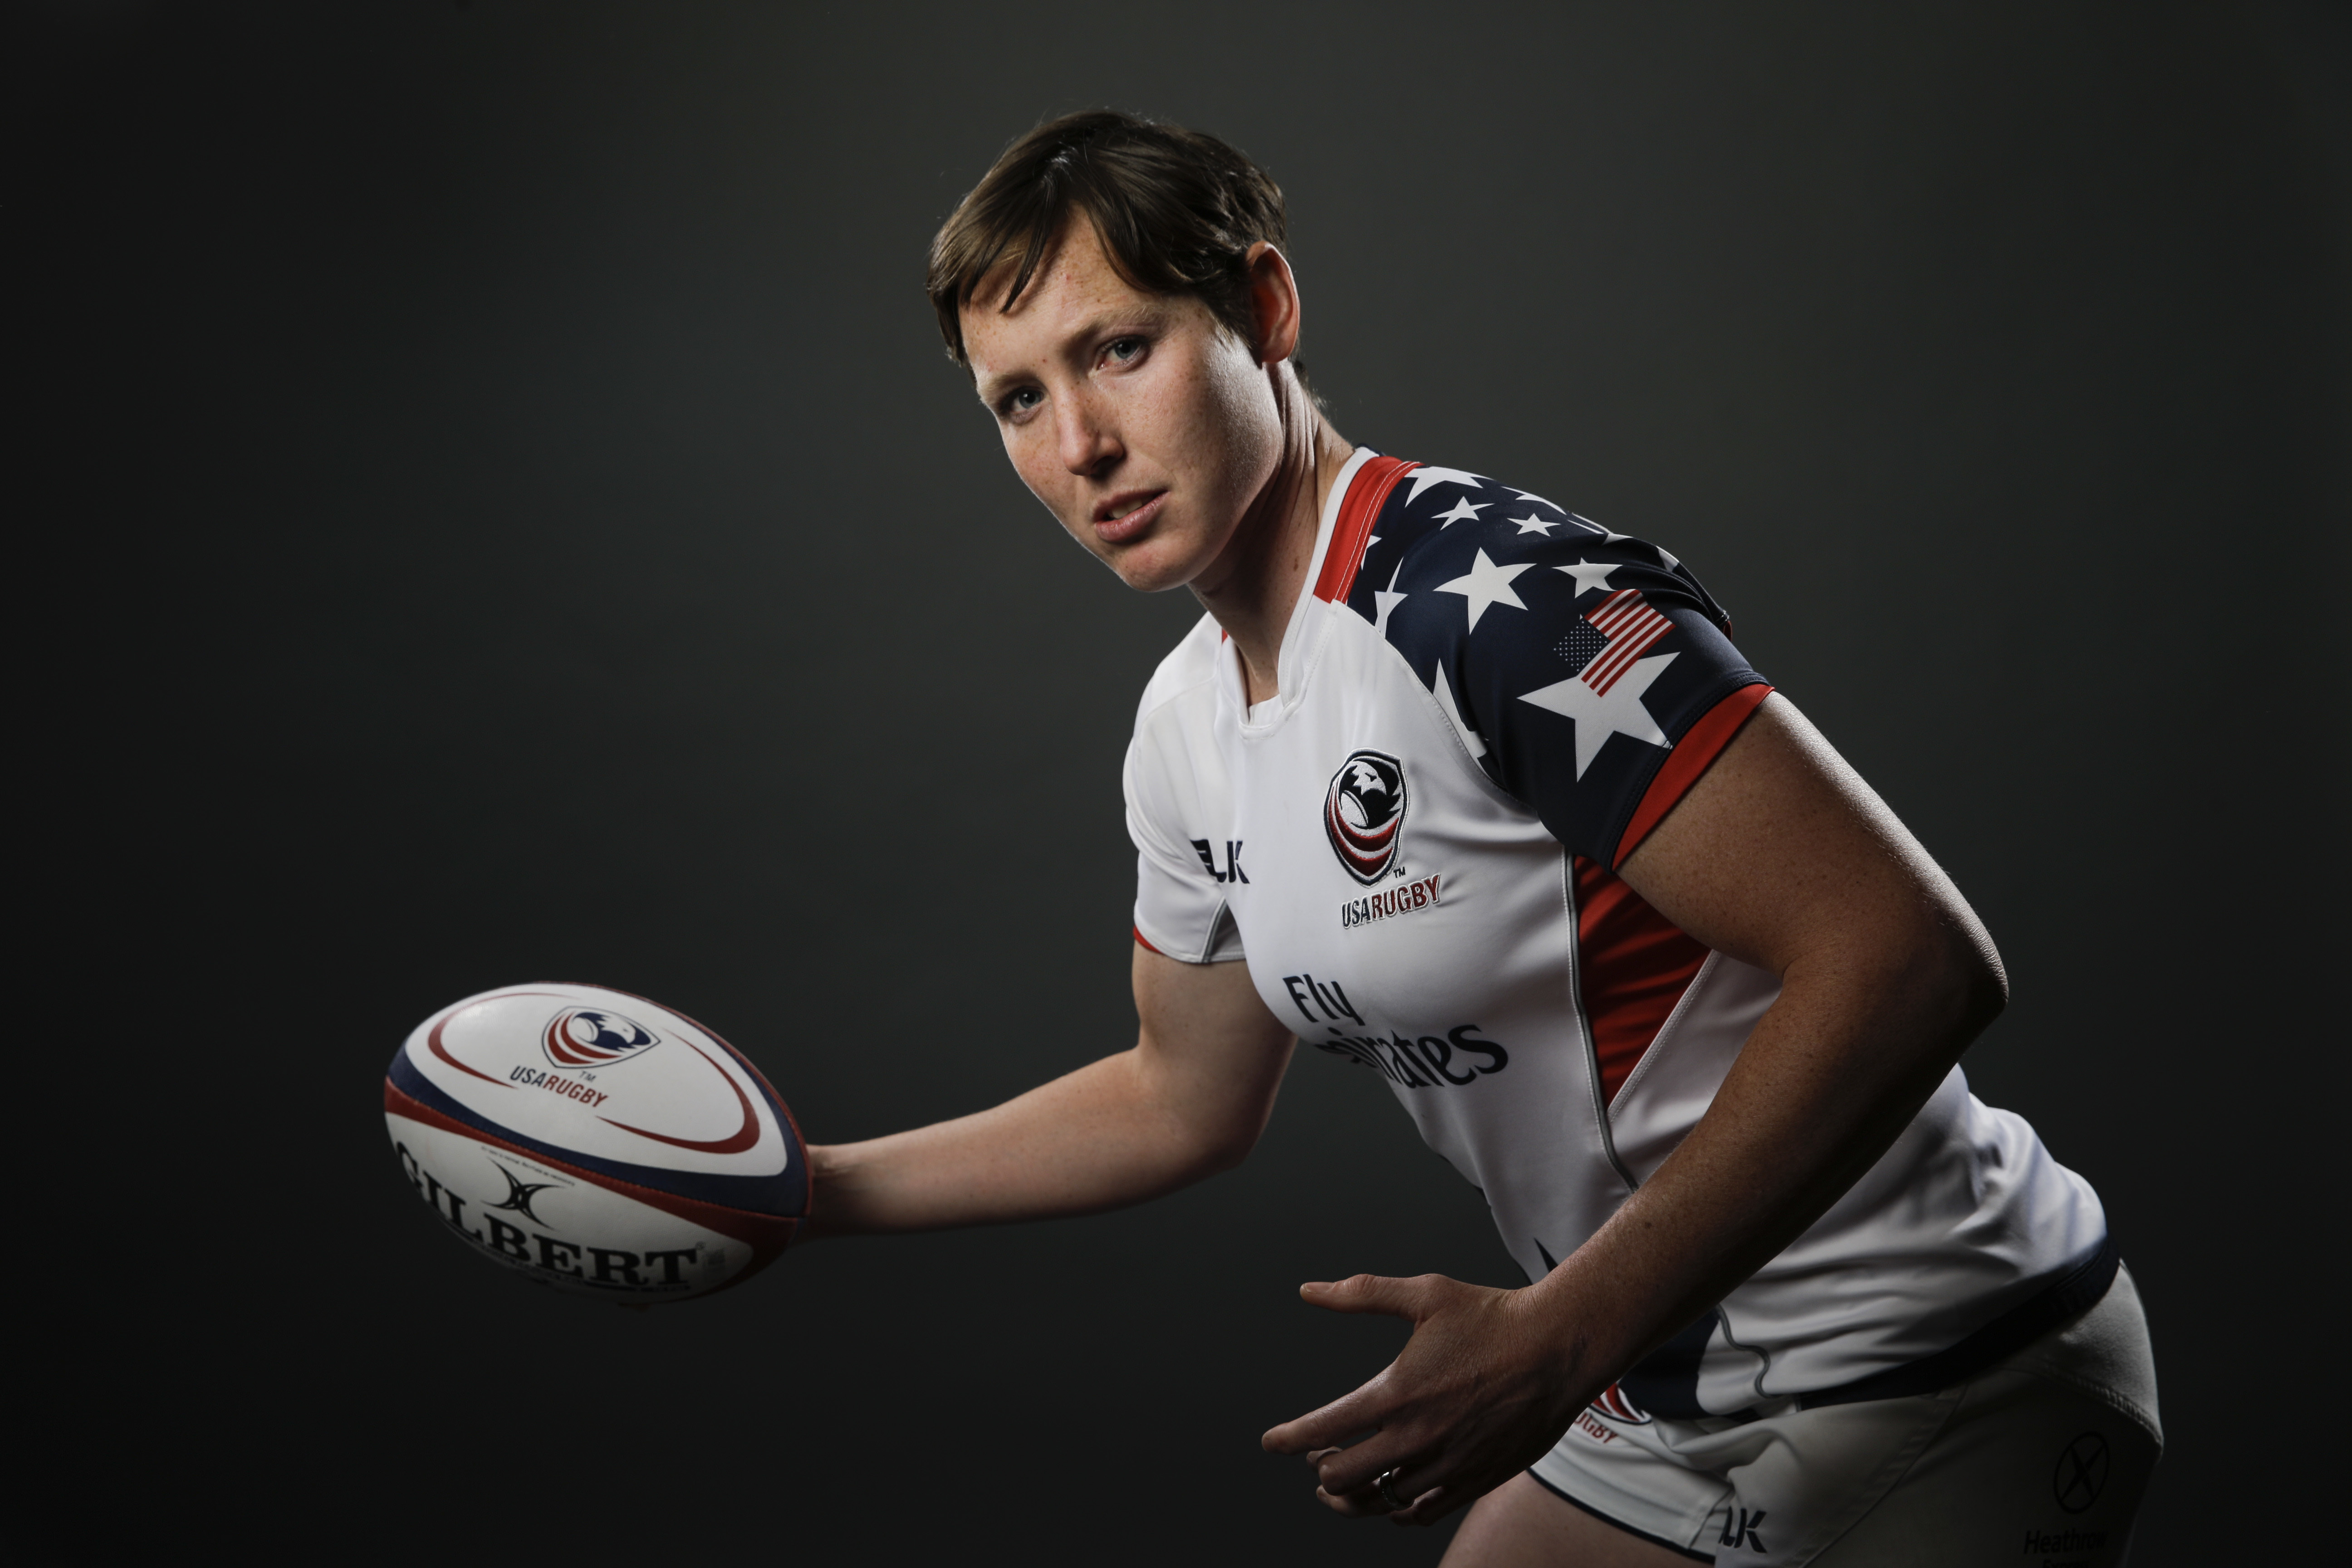 FILE - In this March 8, 2016 file photo, Rugby player Jillion Potter poses for photos at the 2016 Team USA Media Summit, in Beverly Hills, Calif.  Potter has overcome cancer and a serious neck injury to take her place in the U.S. team at the Summer Olympi